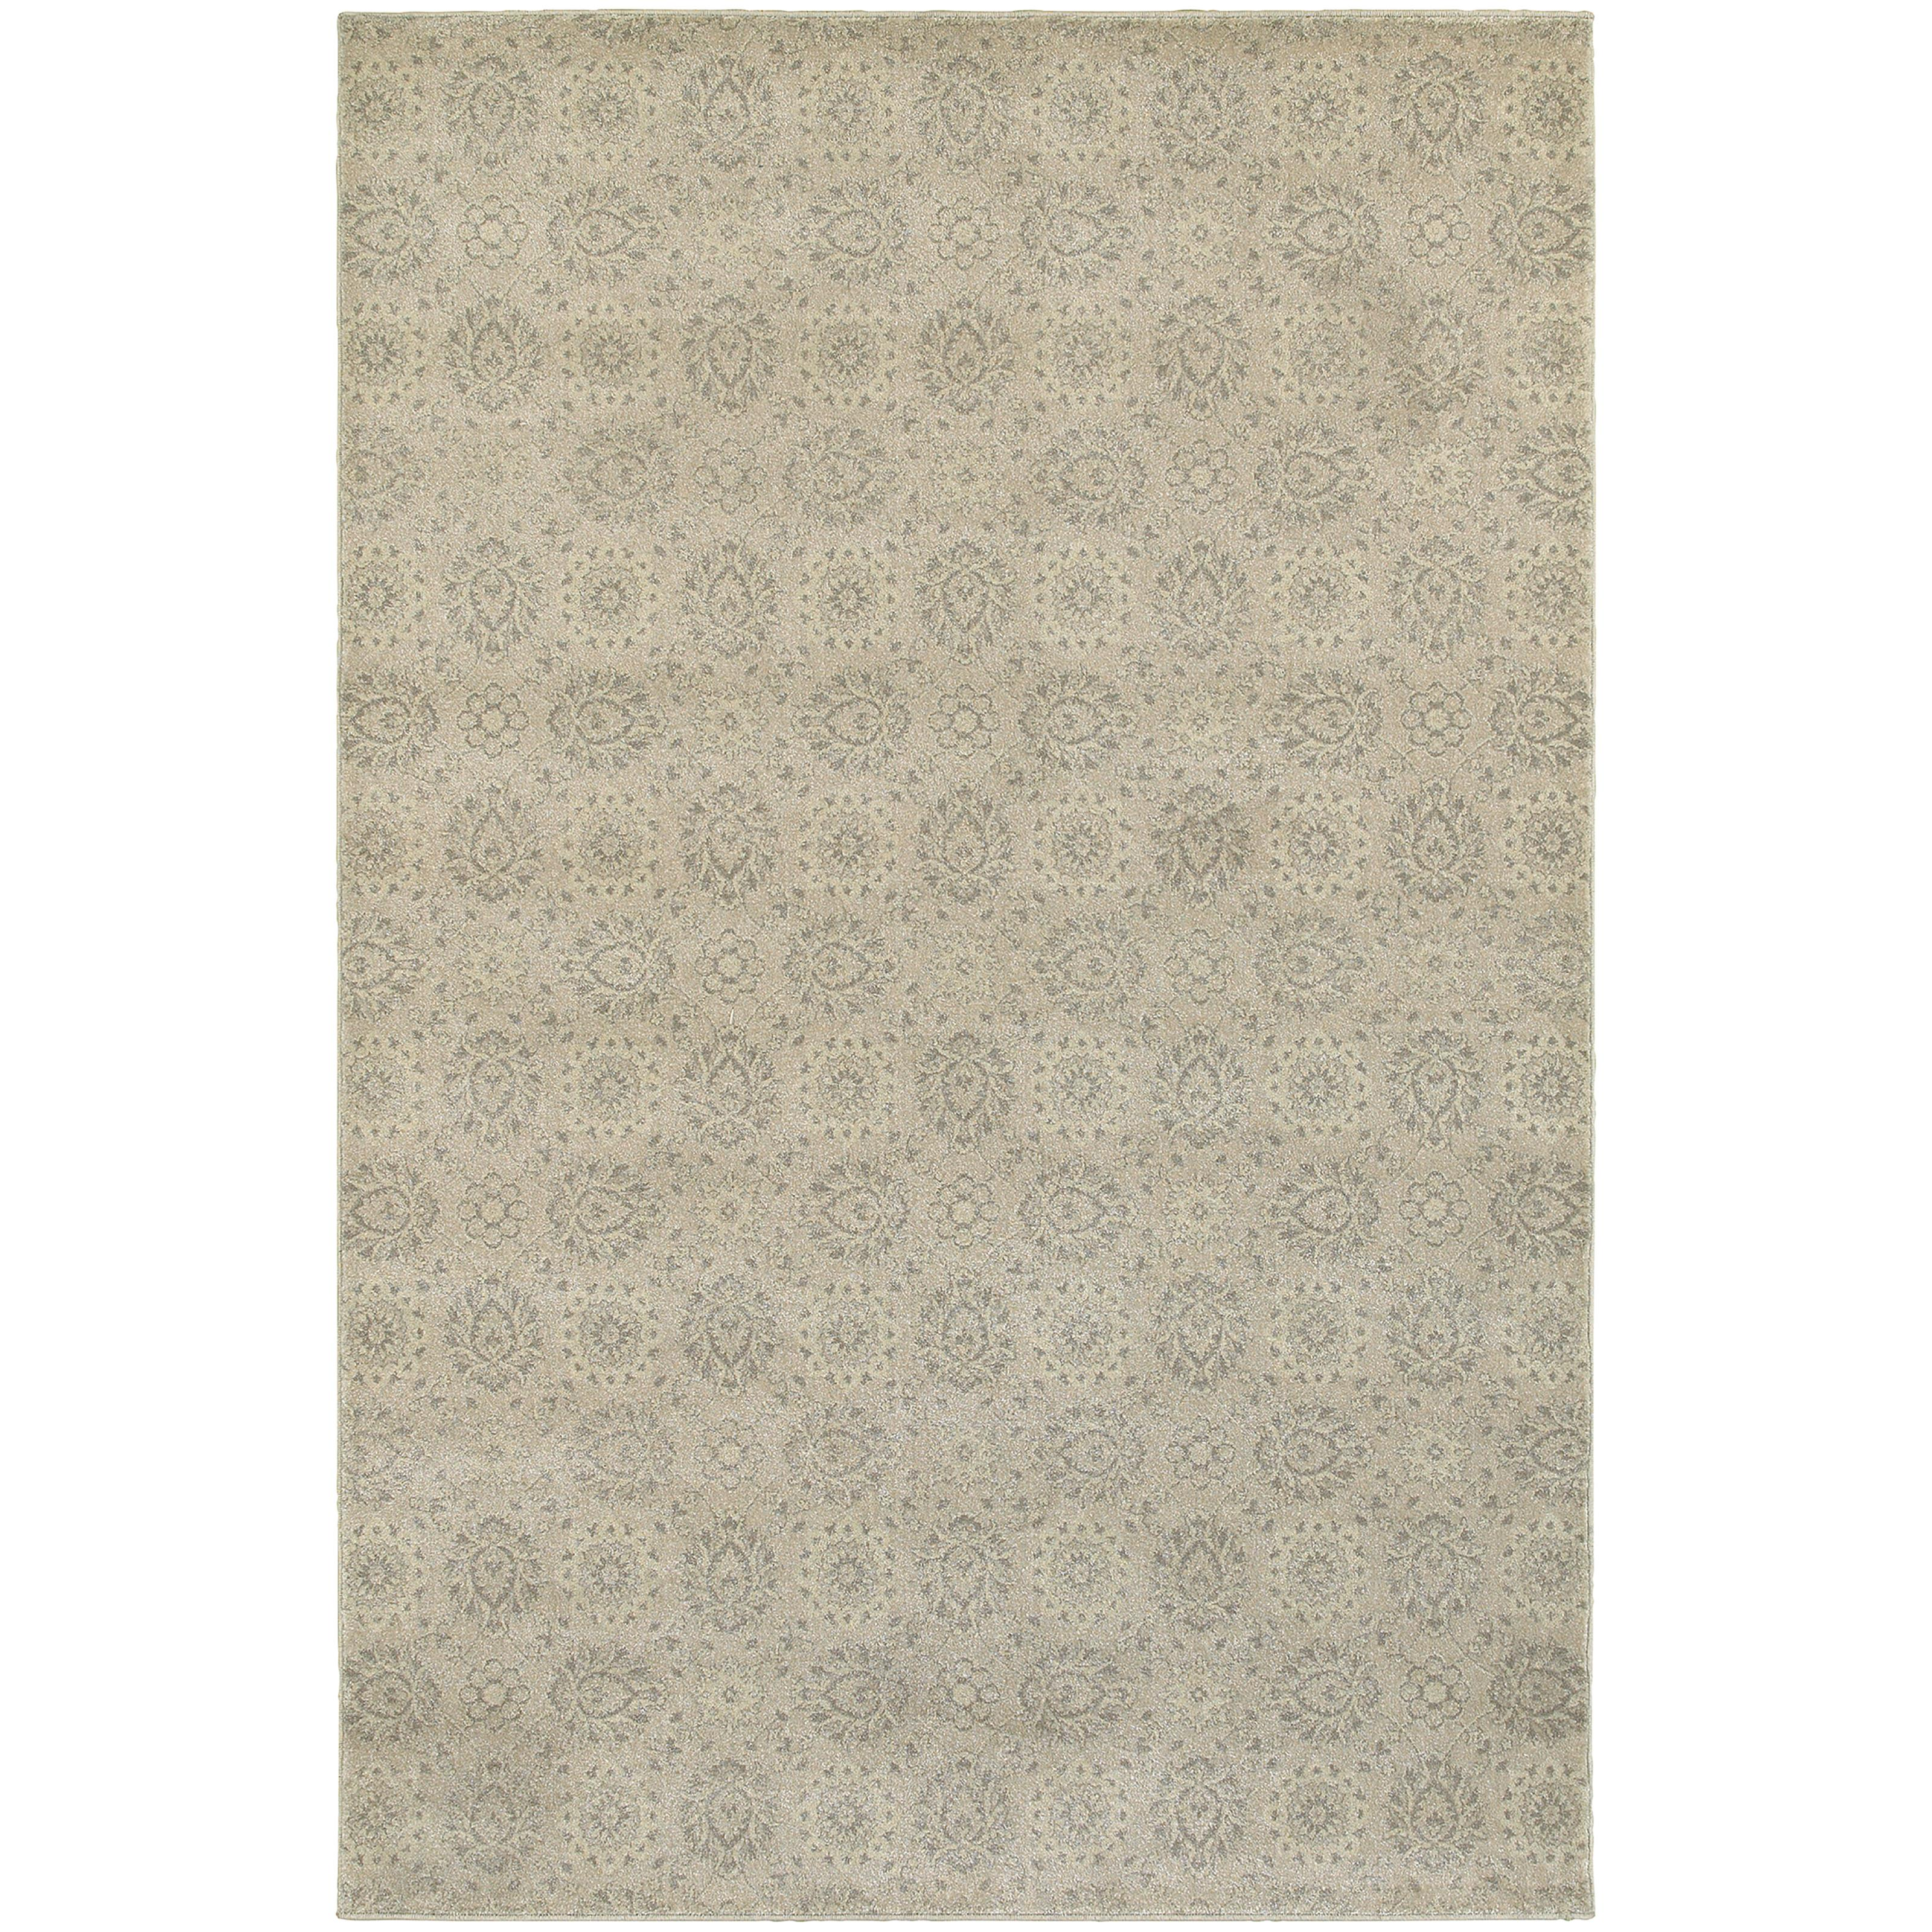 """Richmond 12' 0"""" X 15' 0"""" Rug by Oriental Weavers at Esprit Decor Home Furnishings"""